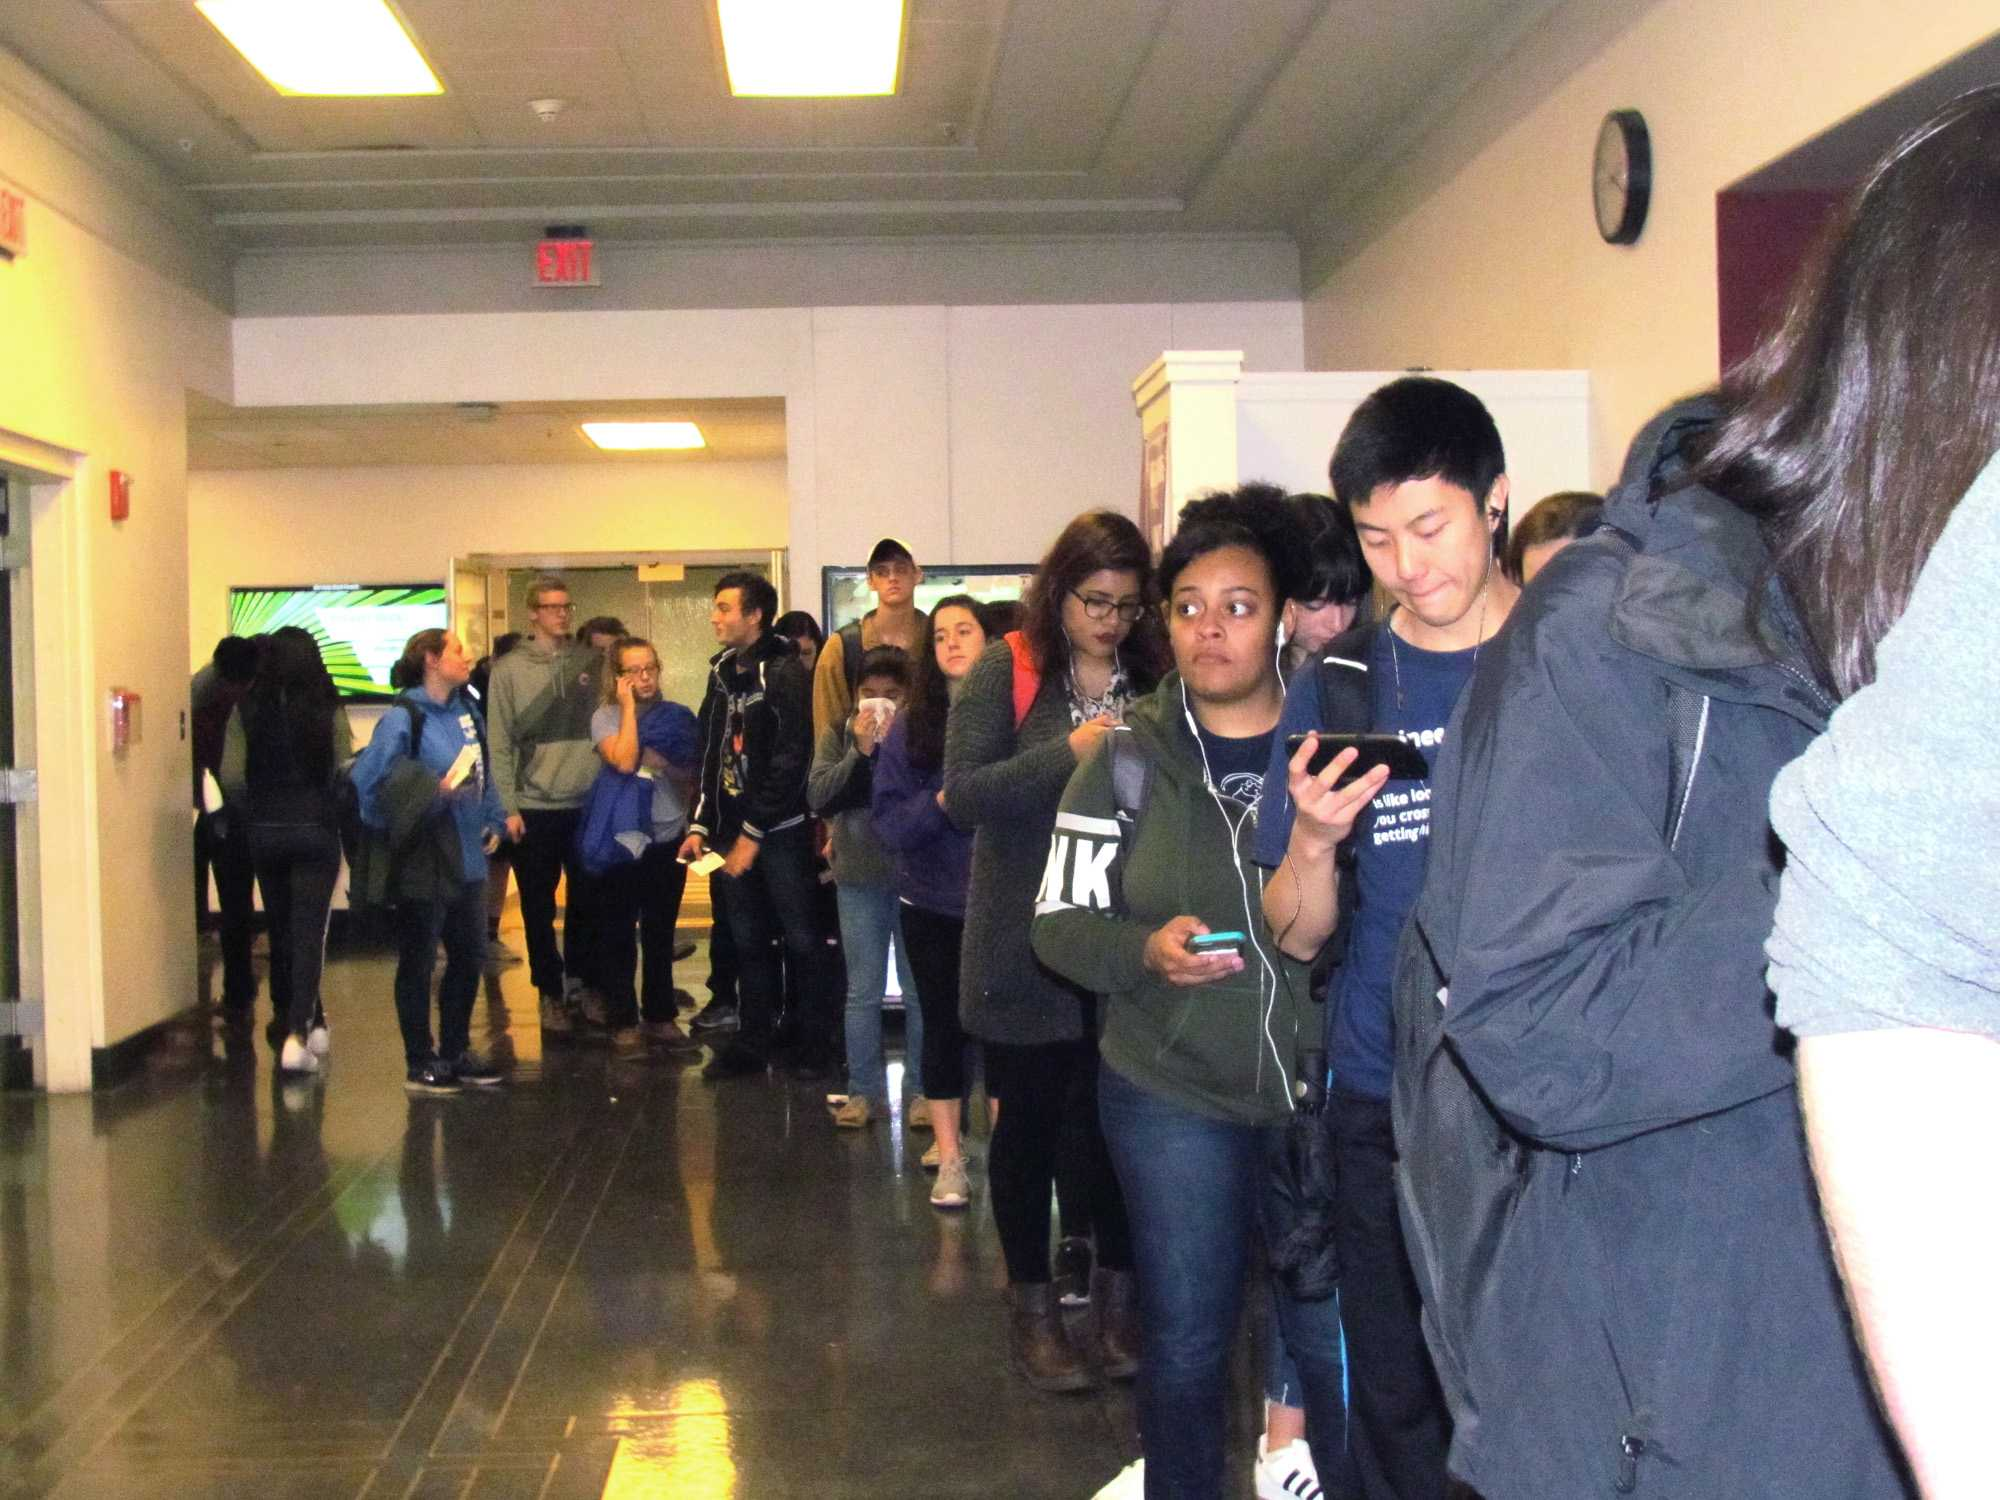 Students lineup at the polls in the Union basement for voting in the 2016 election.